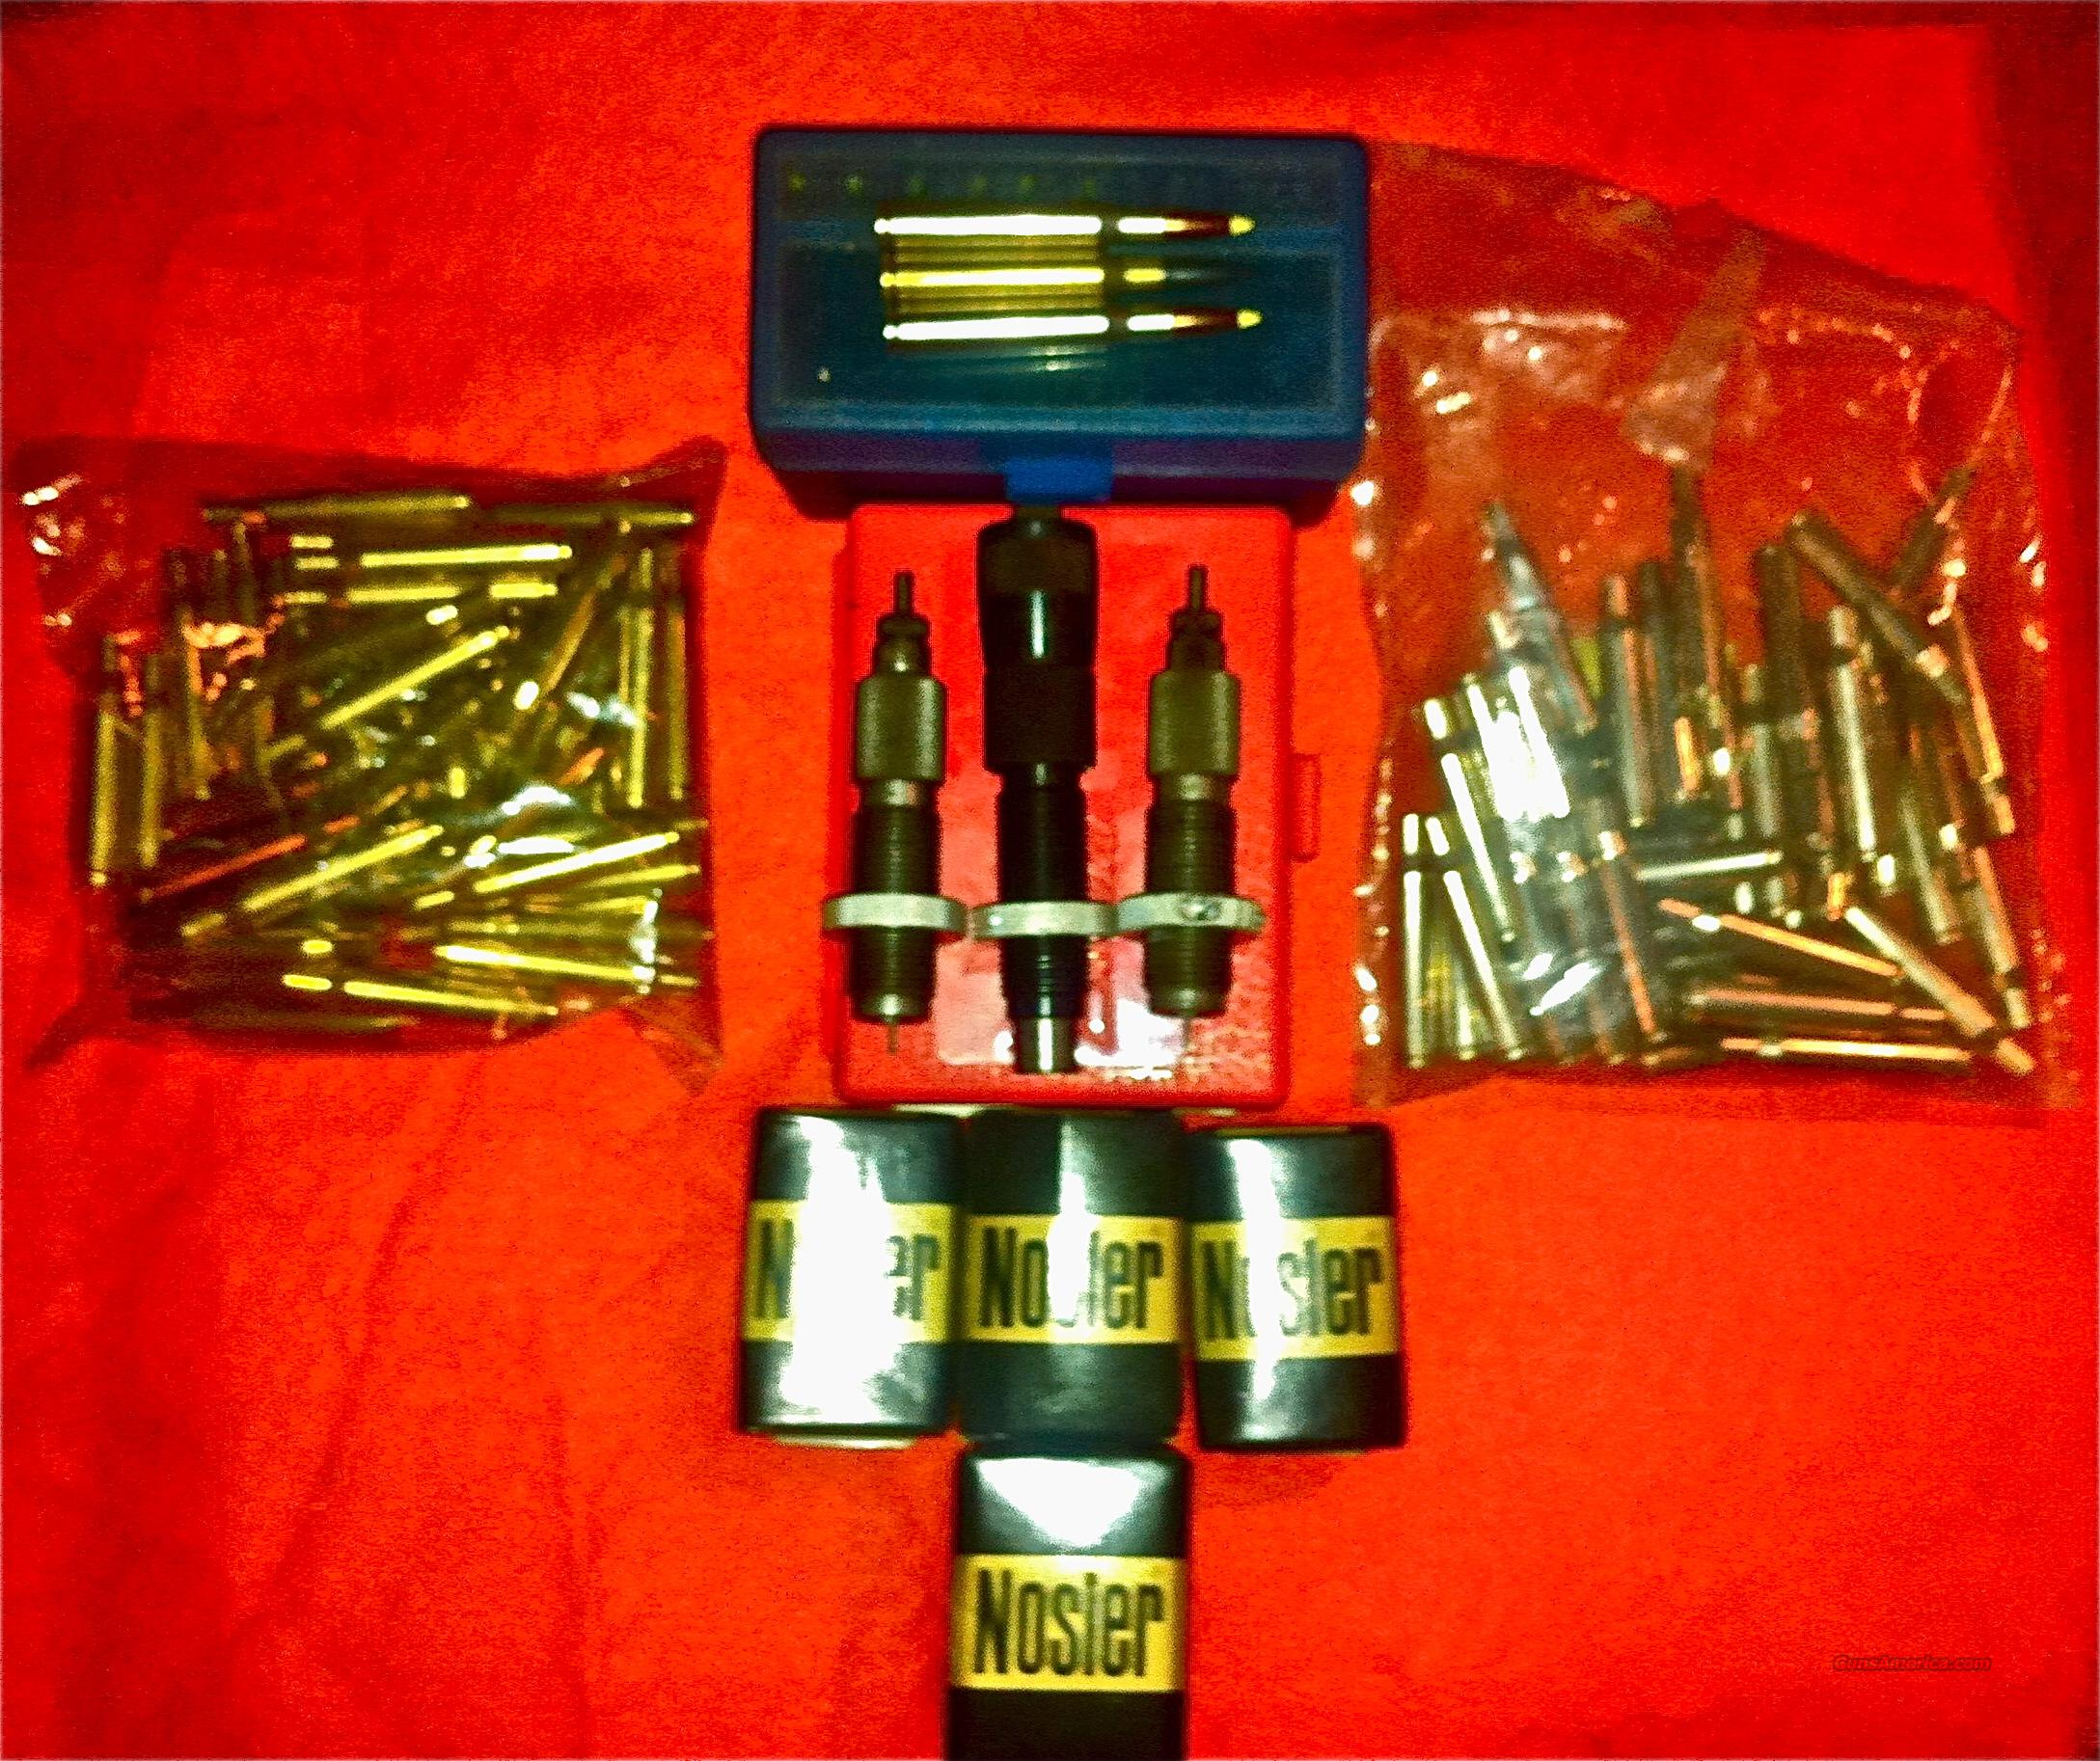 270 Win Forester 3 Die Set & Components & Ammo Package  Non-Guns > Reloading > Equipment > Metallic > Dies